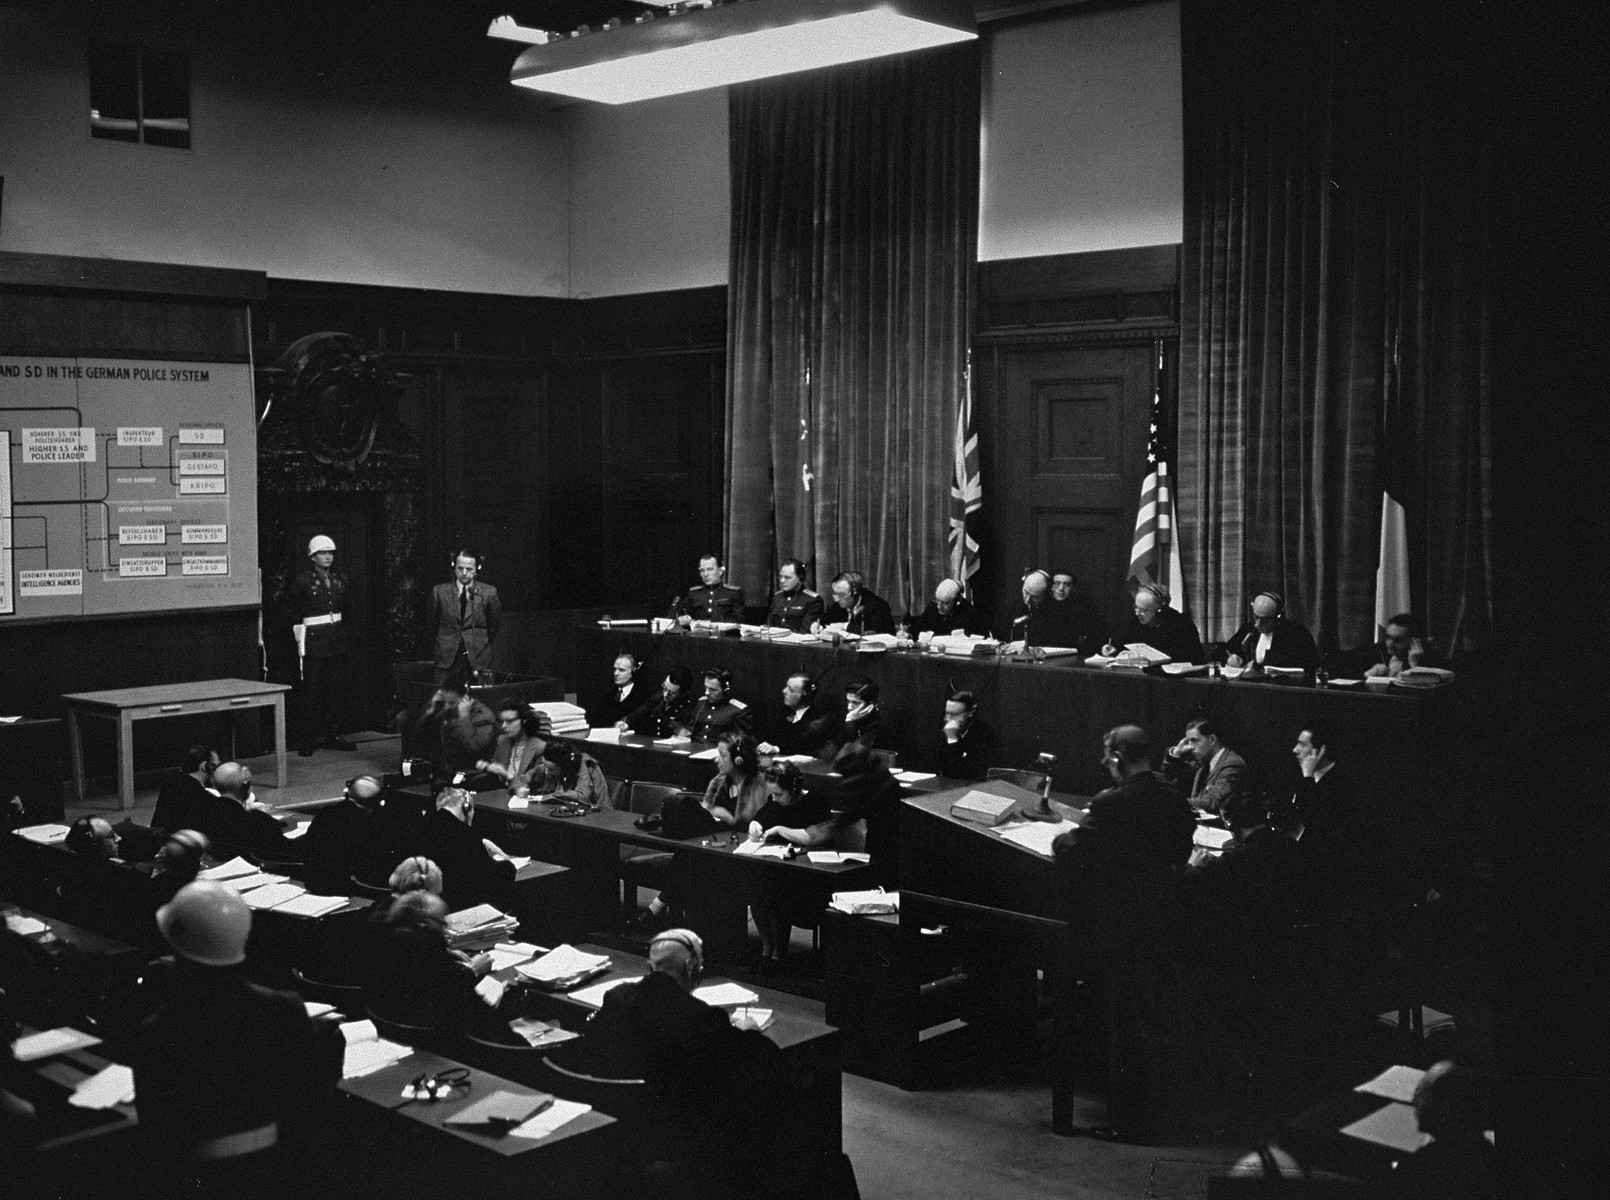 The International Military Tribunal hears evidence on defendant Ernst Kaltenbrunner, the SD, and the German police system at the war crimes trial in Nuremberg.